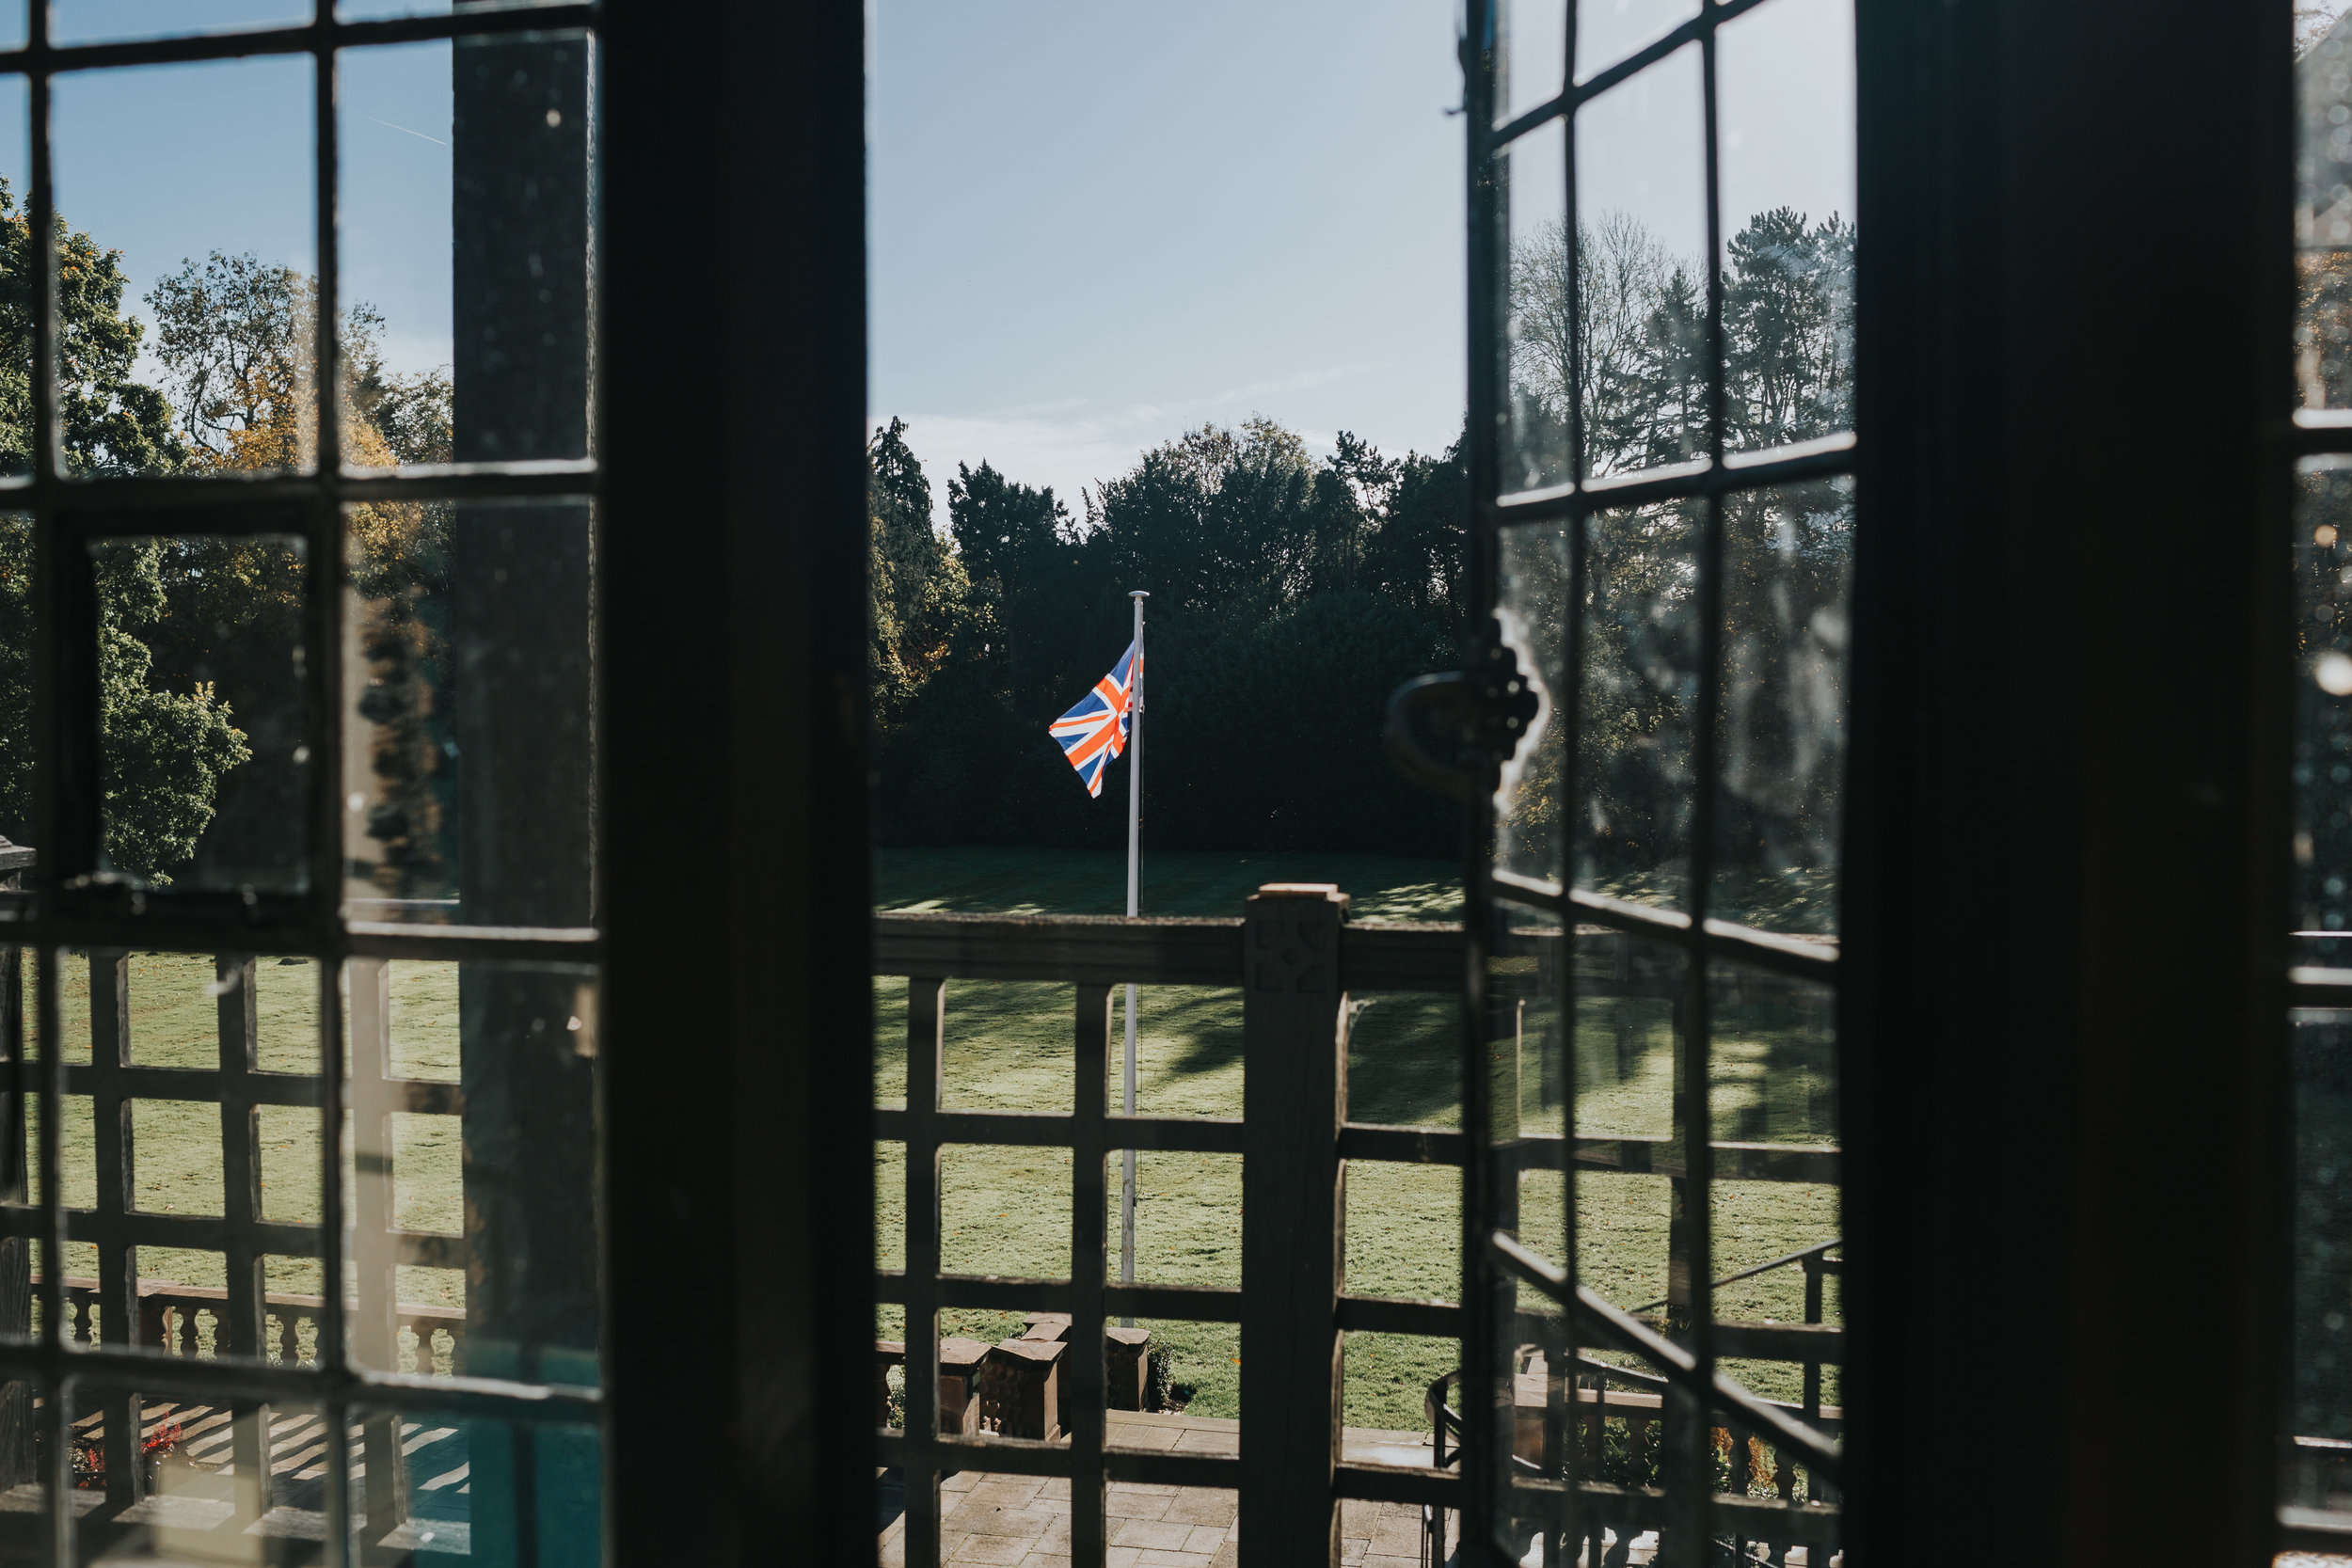 The Union Jack flies outside the hotel room window at Inglewood Manor, the sun is shining.